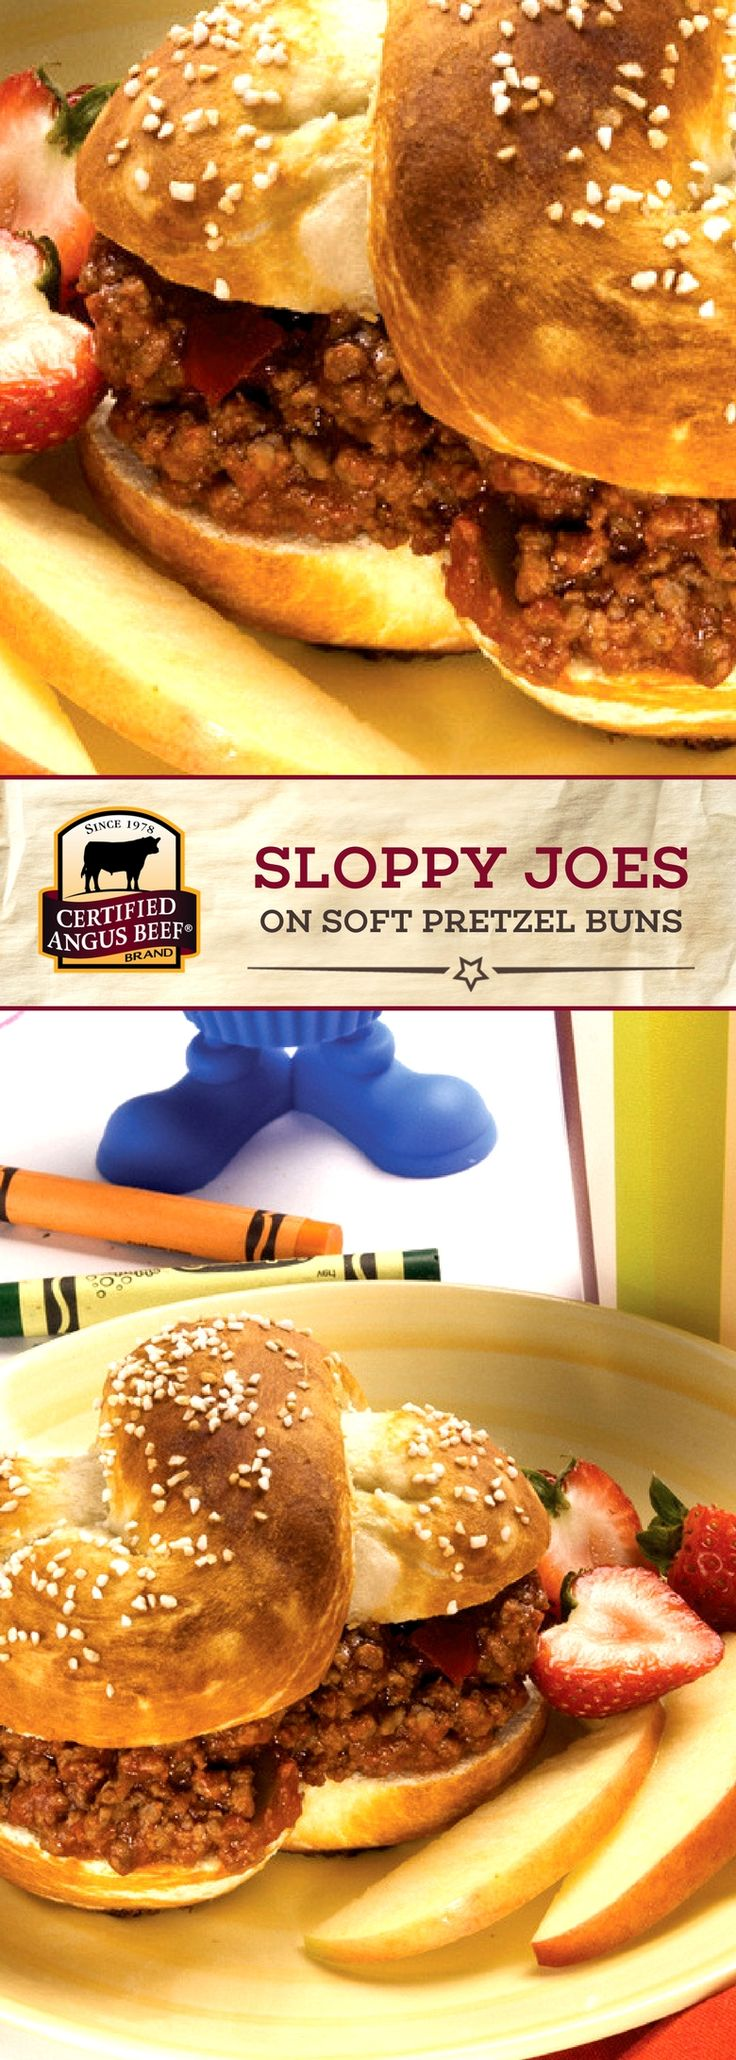 Certified Angus Beef®️ brand Sloppy Joes on Soft Pretzel Buns are so DELICIOUS! This sloppy joe recipe is PACKED with flavor from the best ground chuck and seasoning mix, and uses HOMEMADE pretzel buns!  #bestangusbeef #certifiedangusbeef #beefrecipe #easyrecipes #kidsrecipes